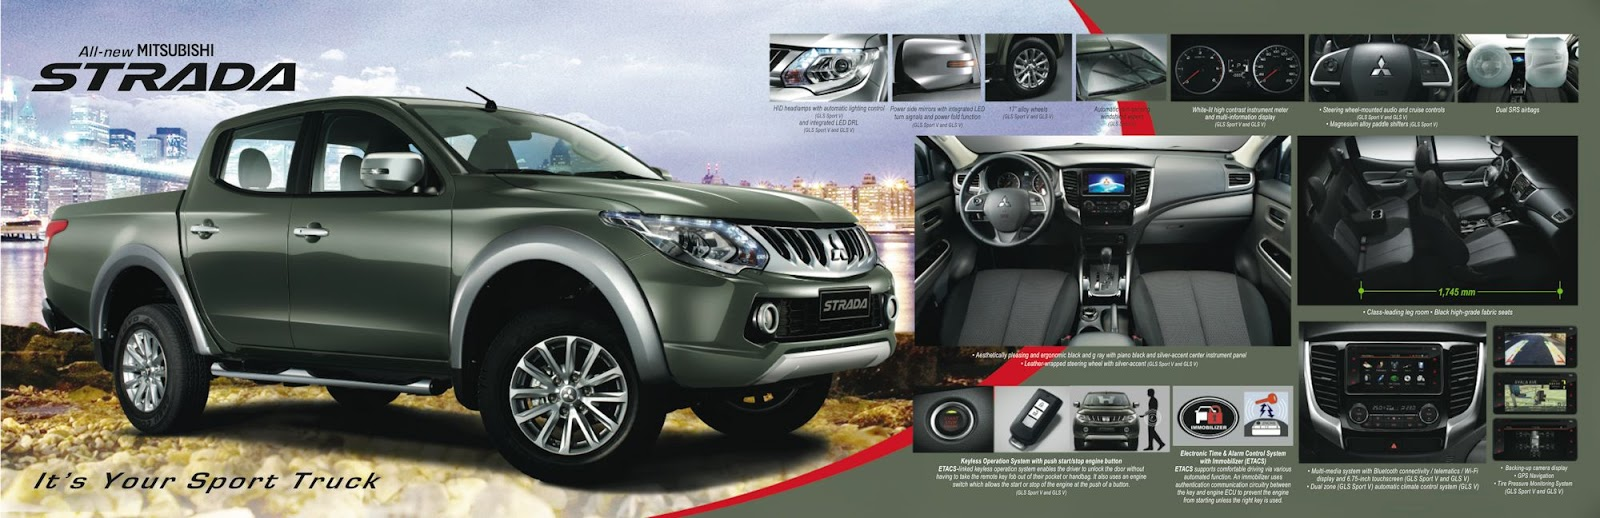 It will be exported to over 150 countries worldwide and is manufactured  solely at Mitsubishi Motors Thailand.